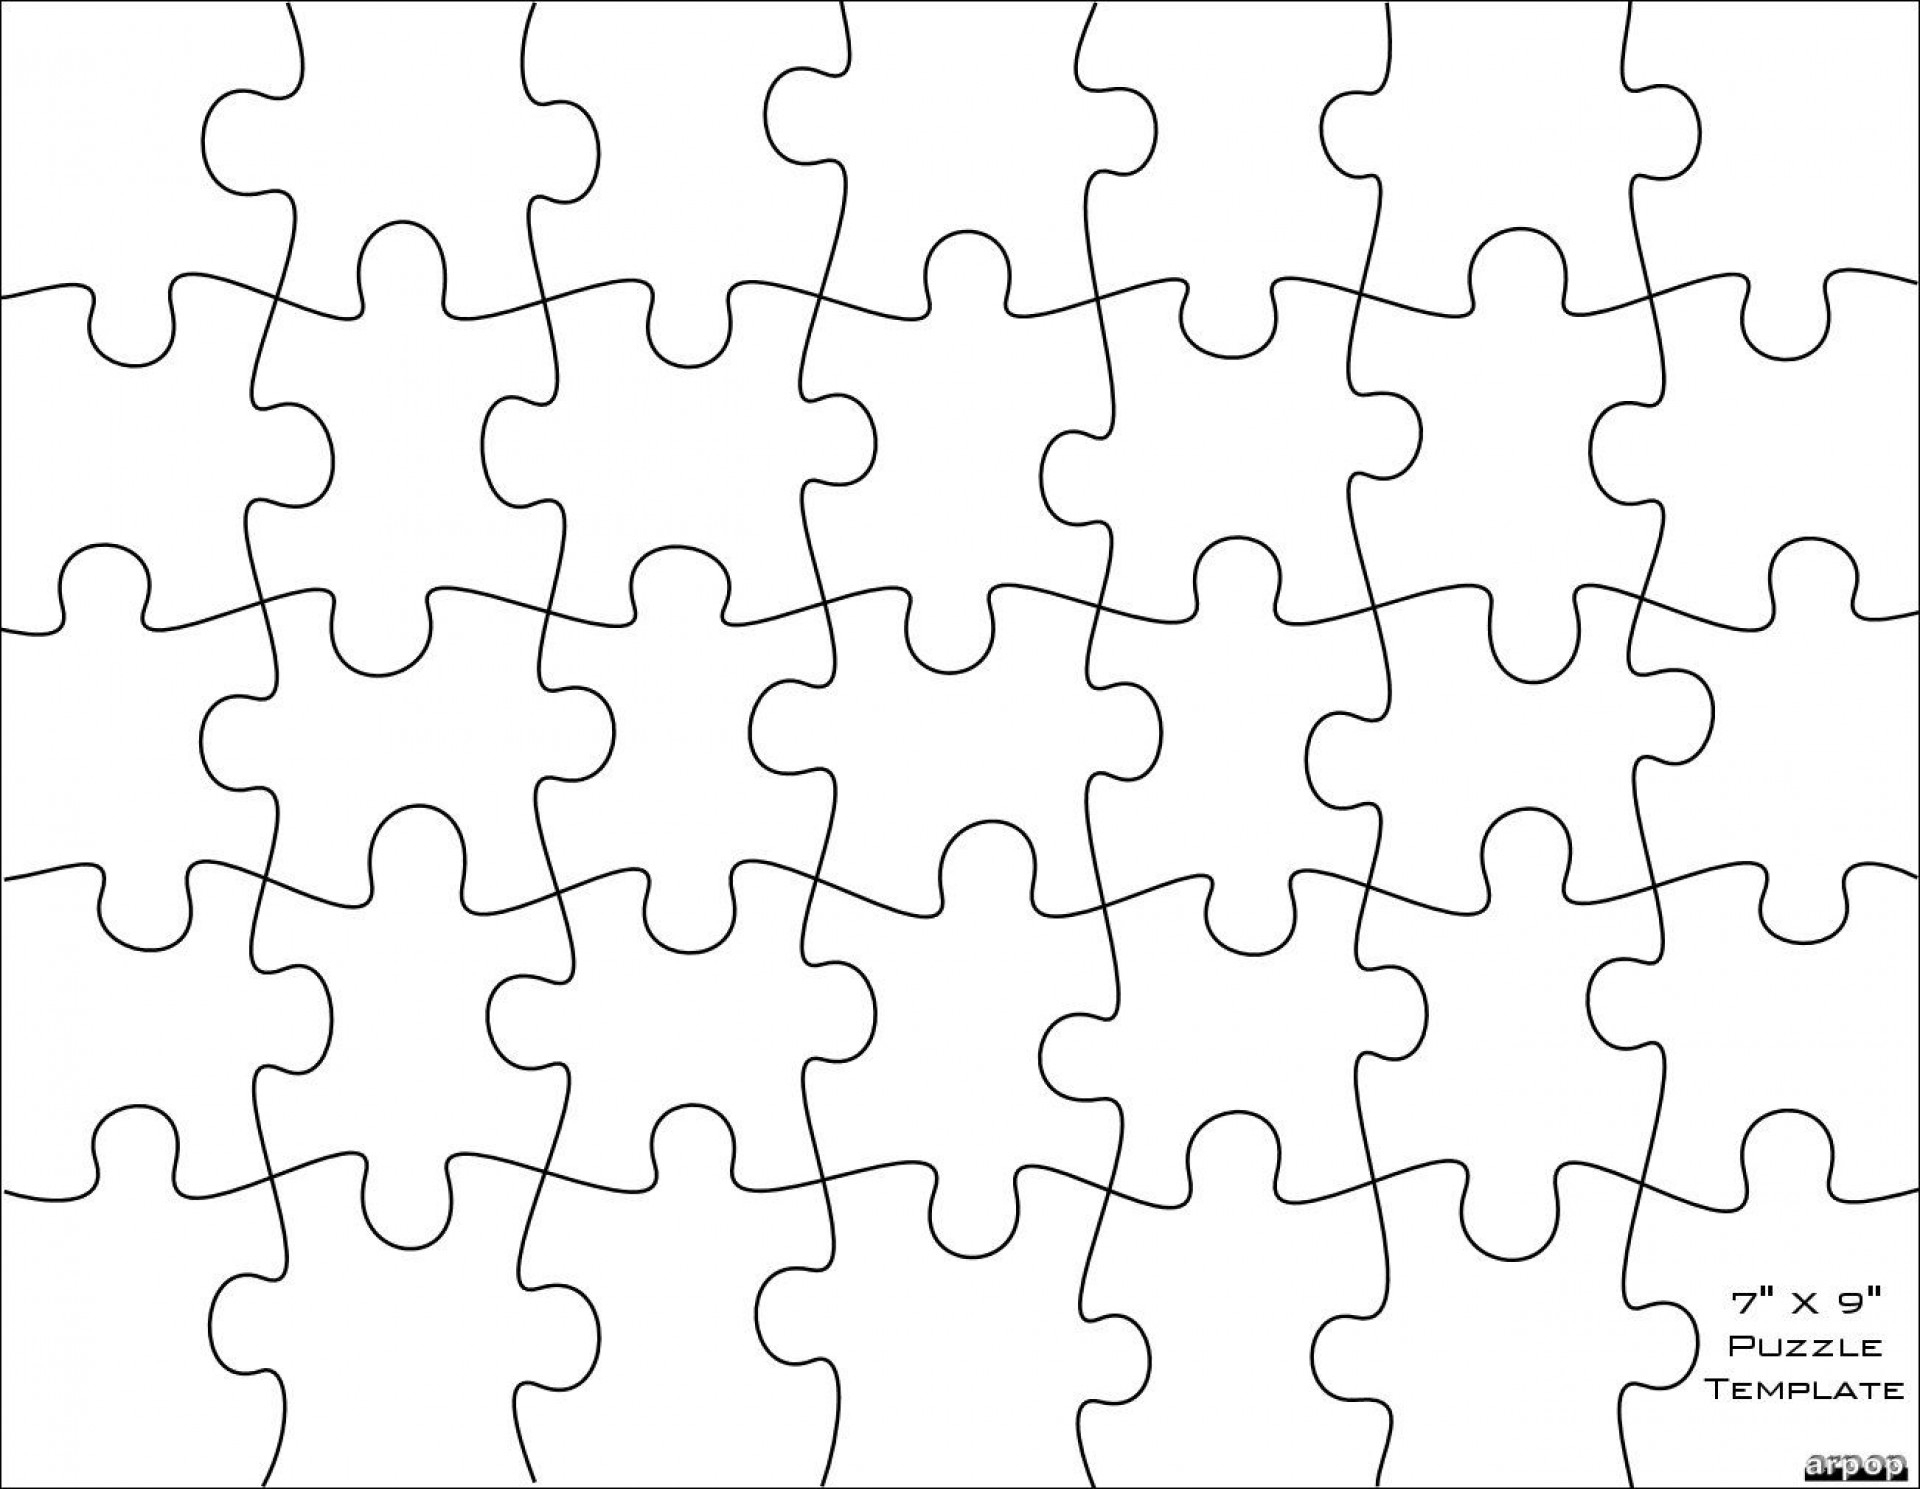 006 Jigsaw Puzzle Blank Template Twenty Pieces Simple Jig Saw - Printable Jigsaw Puzzle Maker